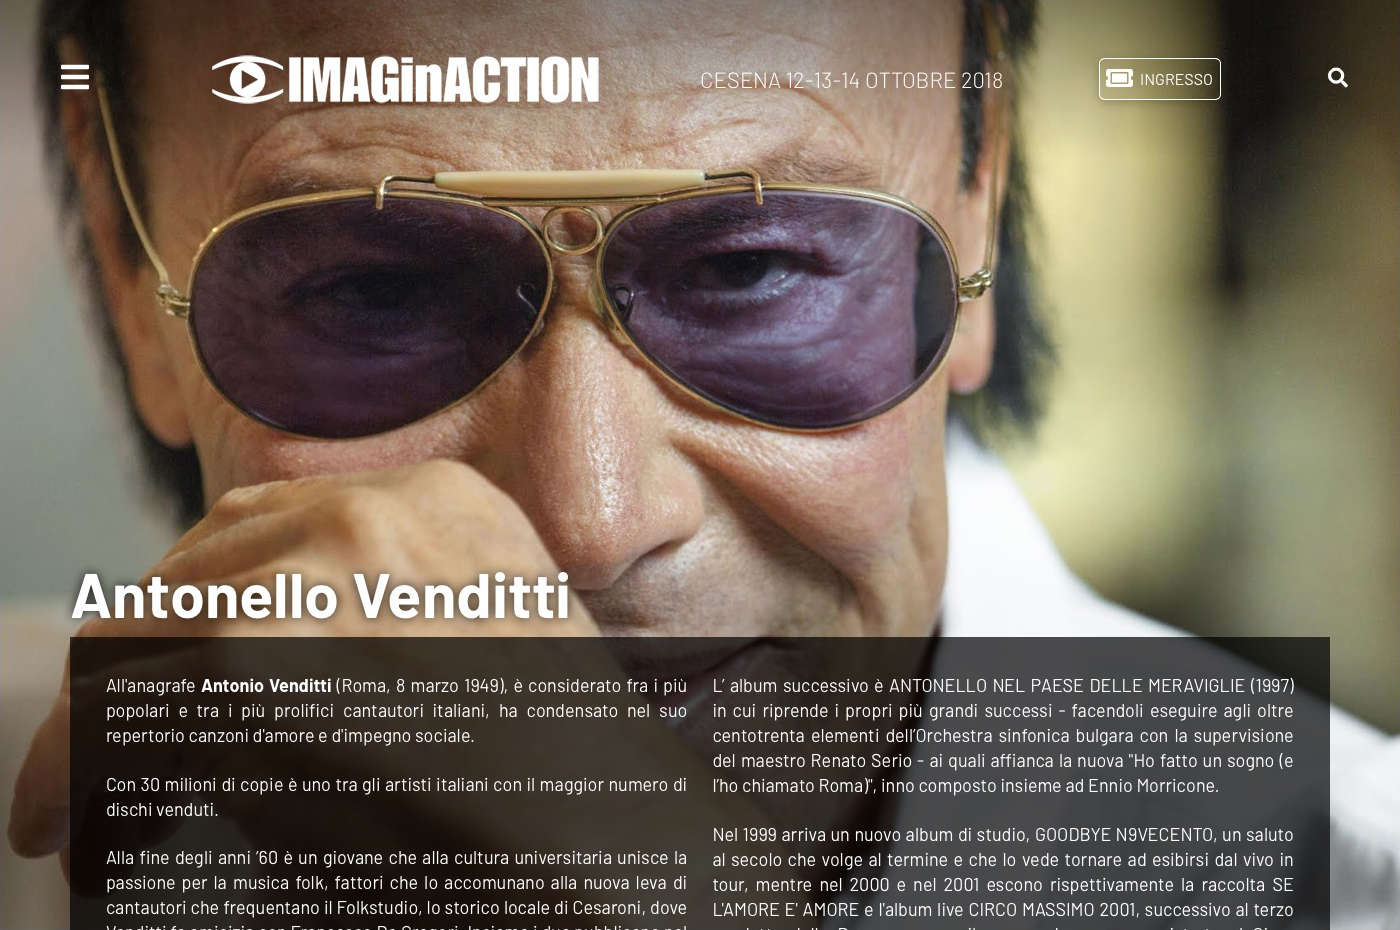 IMAGinACTION - Antonello Venditti